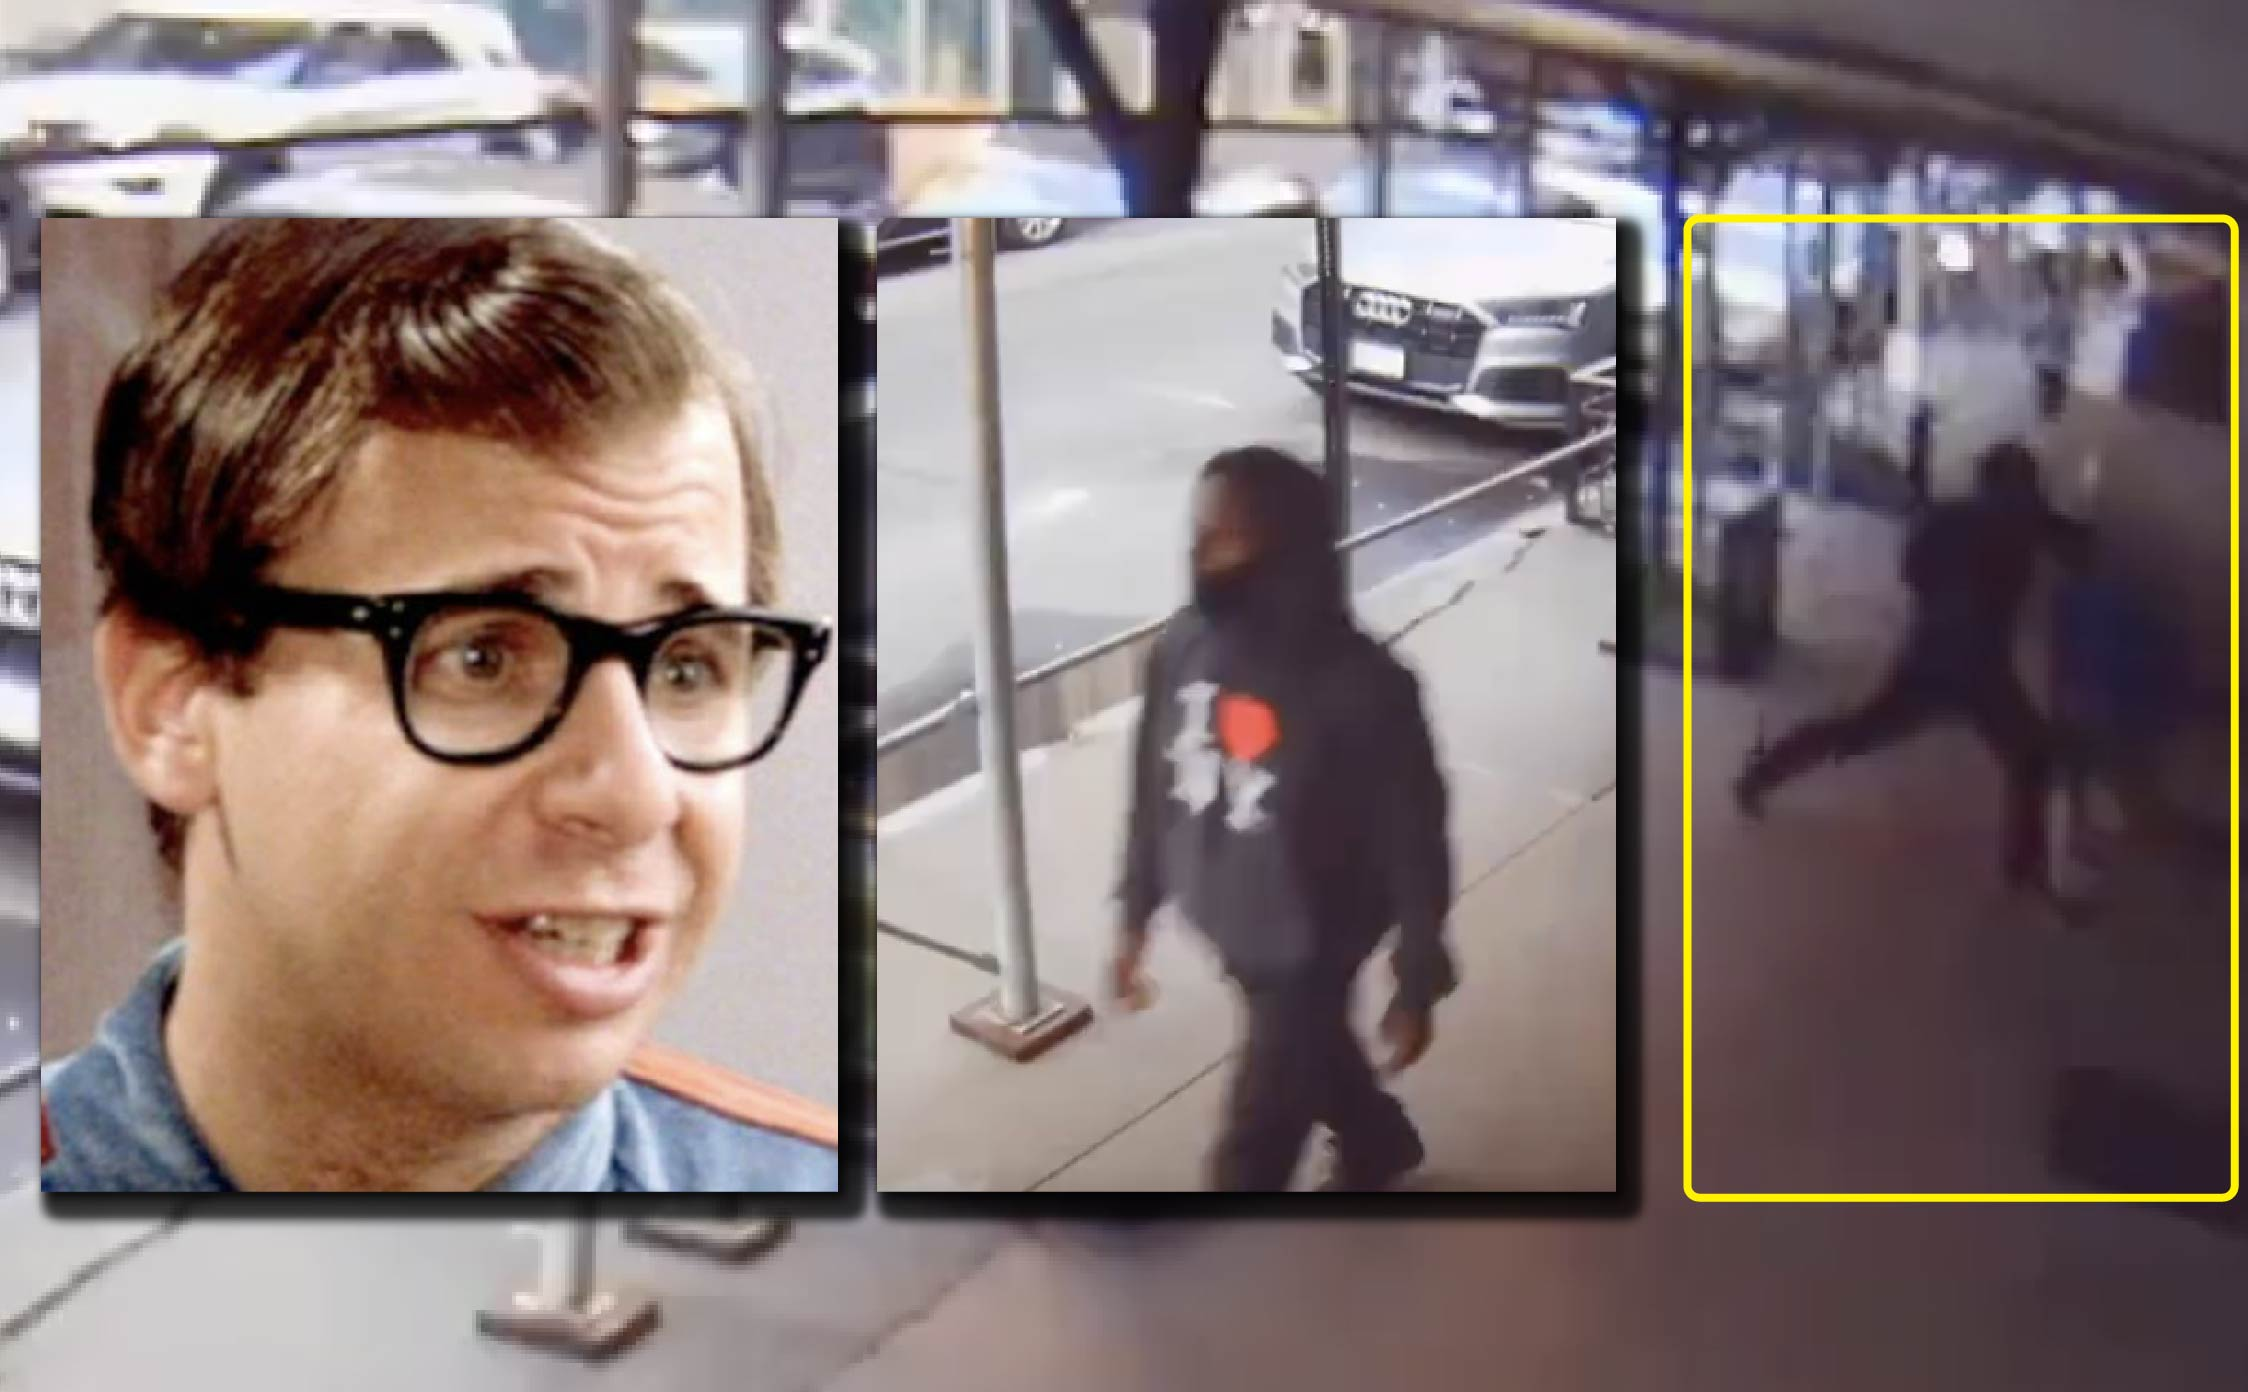 """[VIDEO] """"Ghostbusters"""" Star Viciously Sucker-Punched in the Head at 7:00 am in Swanky Upper West Side of NYC"""